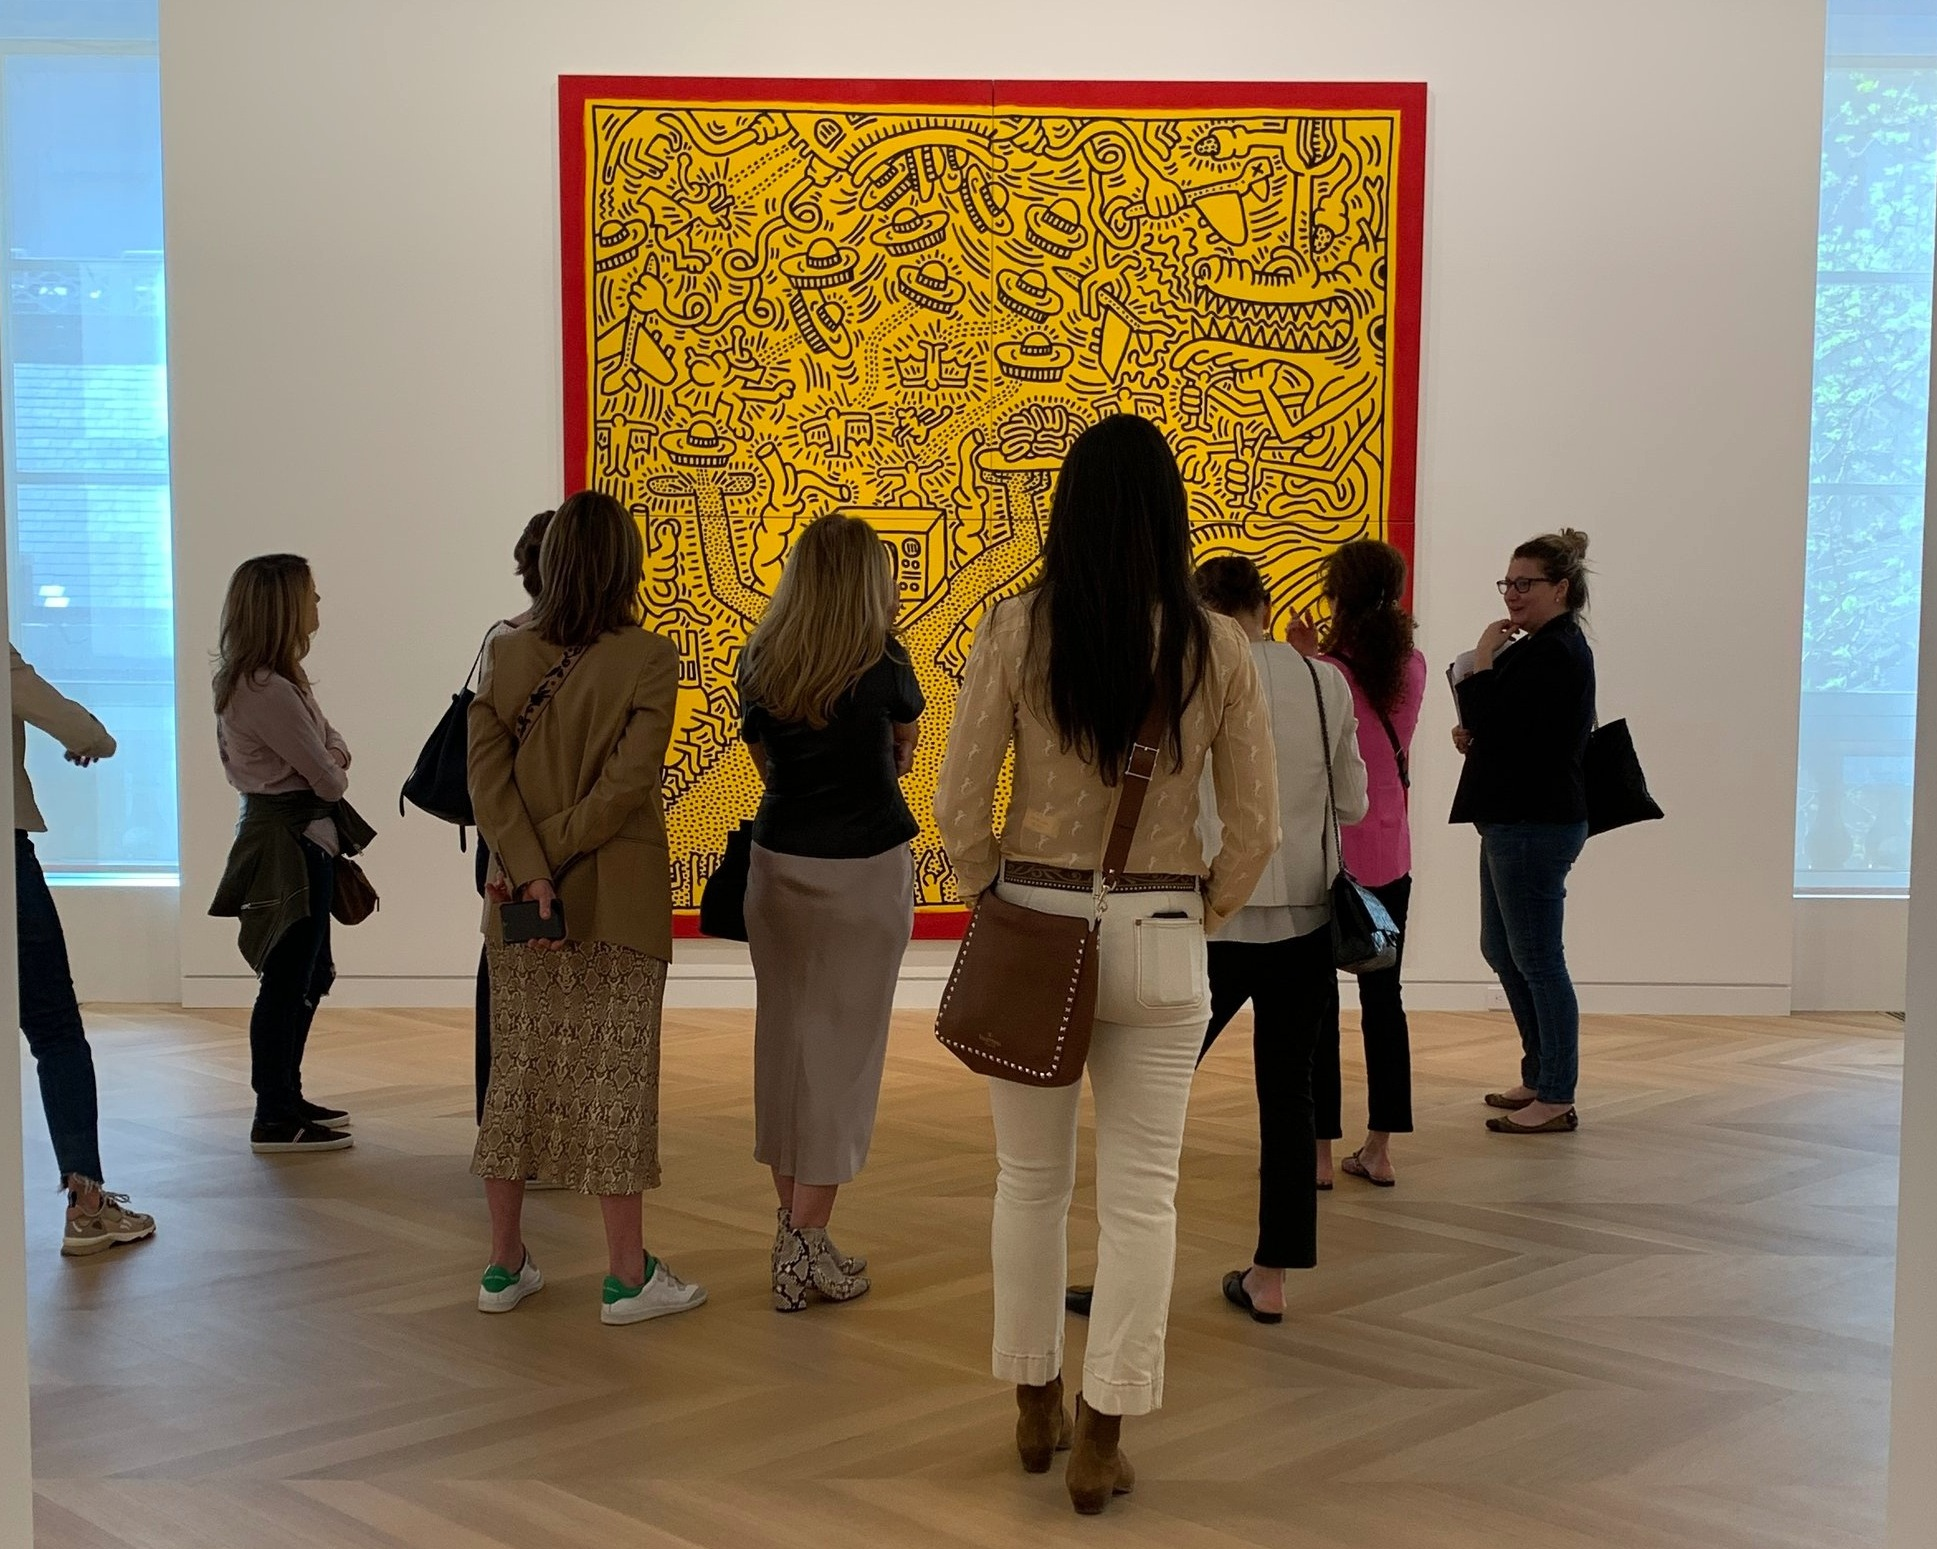 ArtMusE Experiences - OUR EXPERIENCES FOR THE CULTURALLY CURIOUS IN MAJOR CITIES AROUND THE WORLD INCLUDE EXCLUSIVE ACCESS TO MUSEUM COLLECTIONS, TOP GALLERIES AND ARTISTS' STUDIOS.